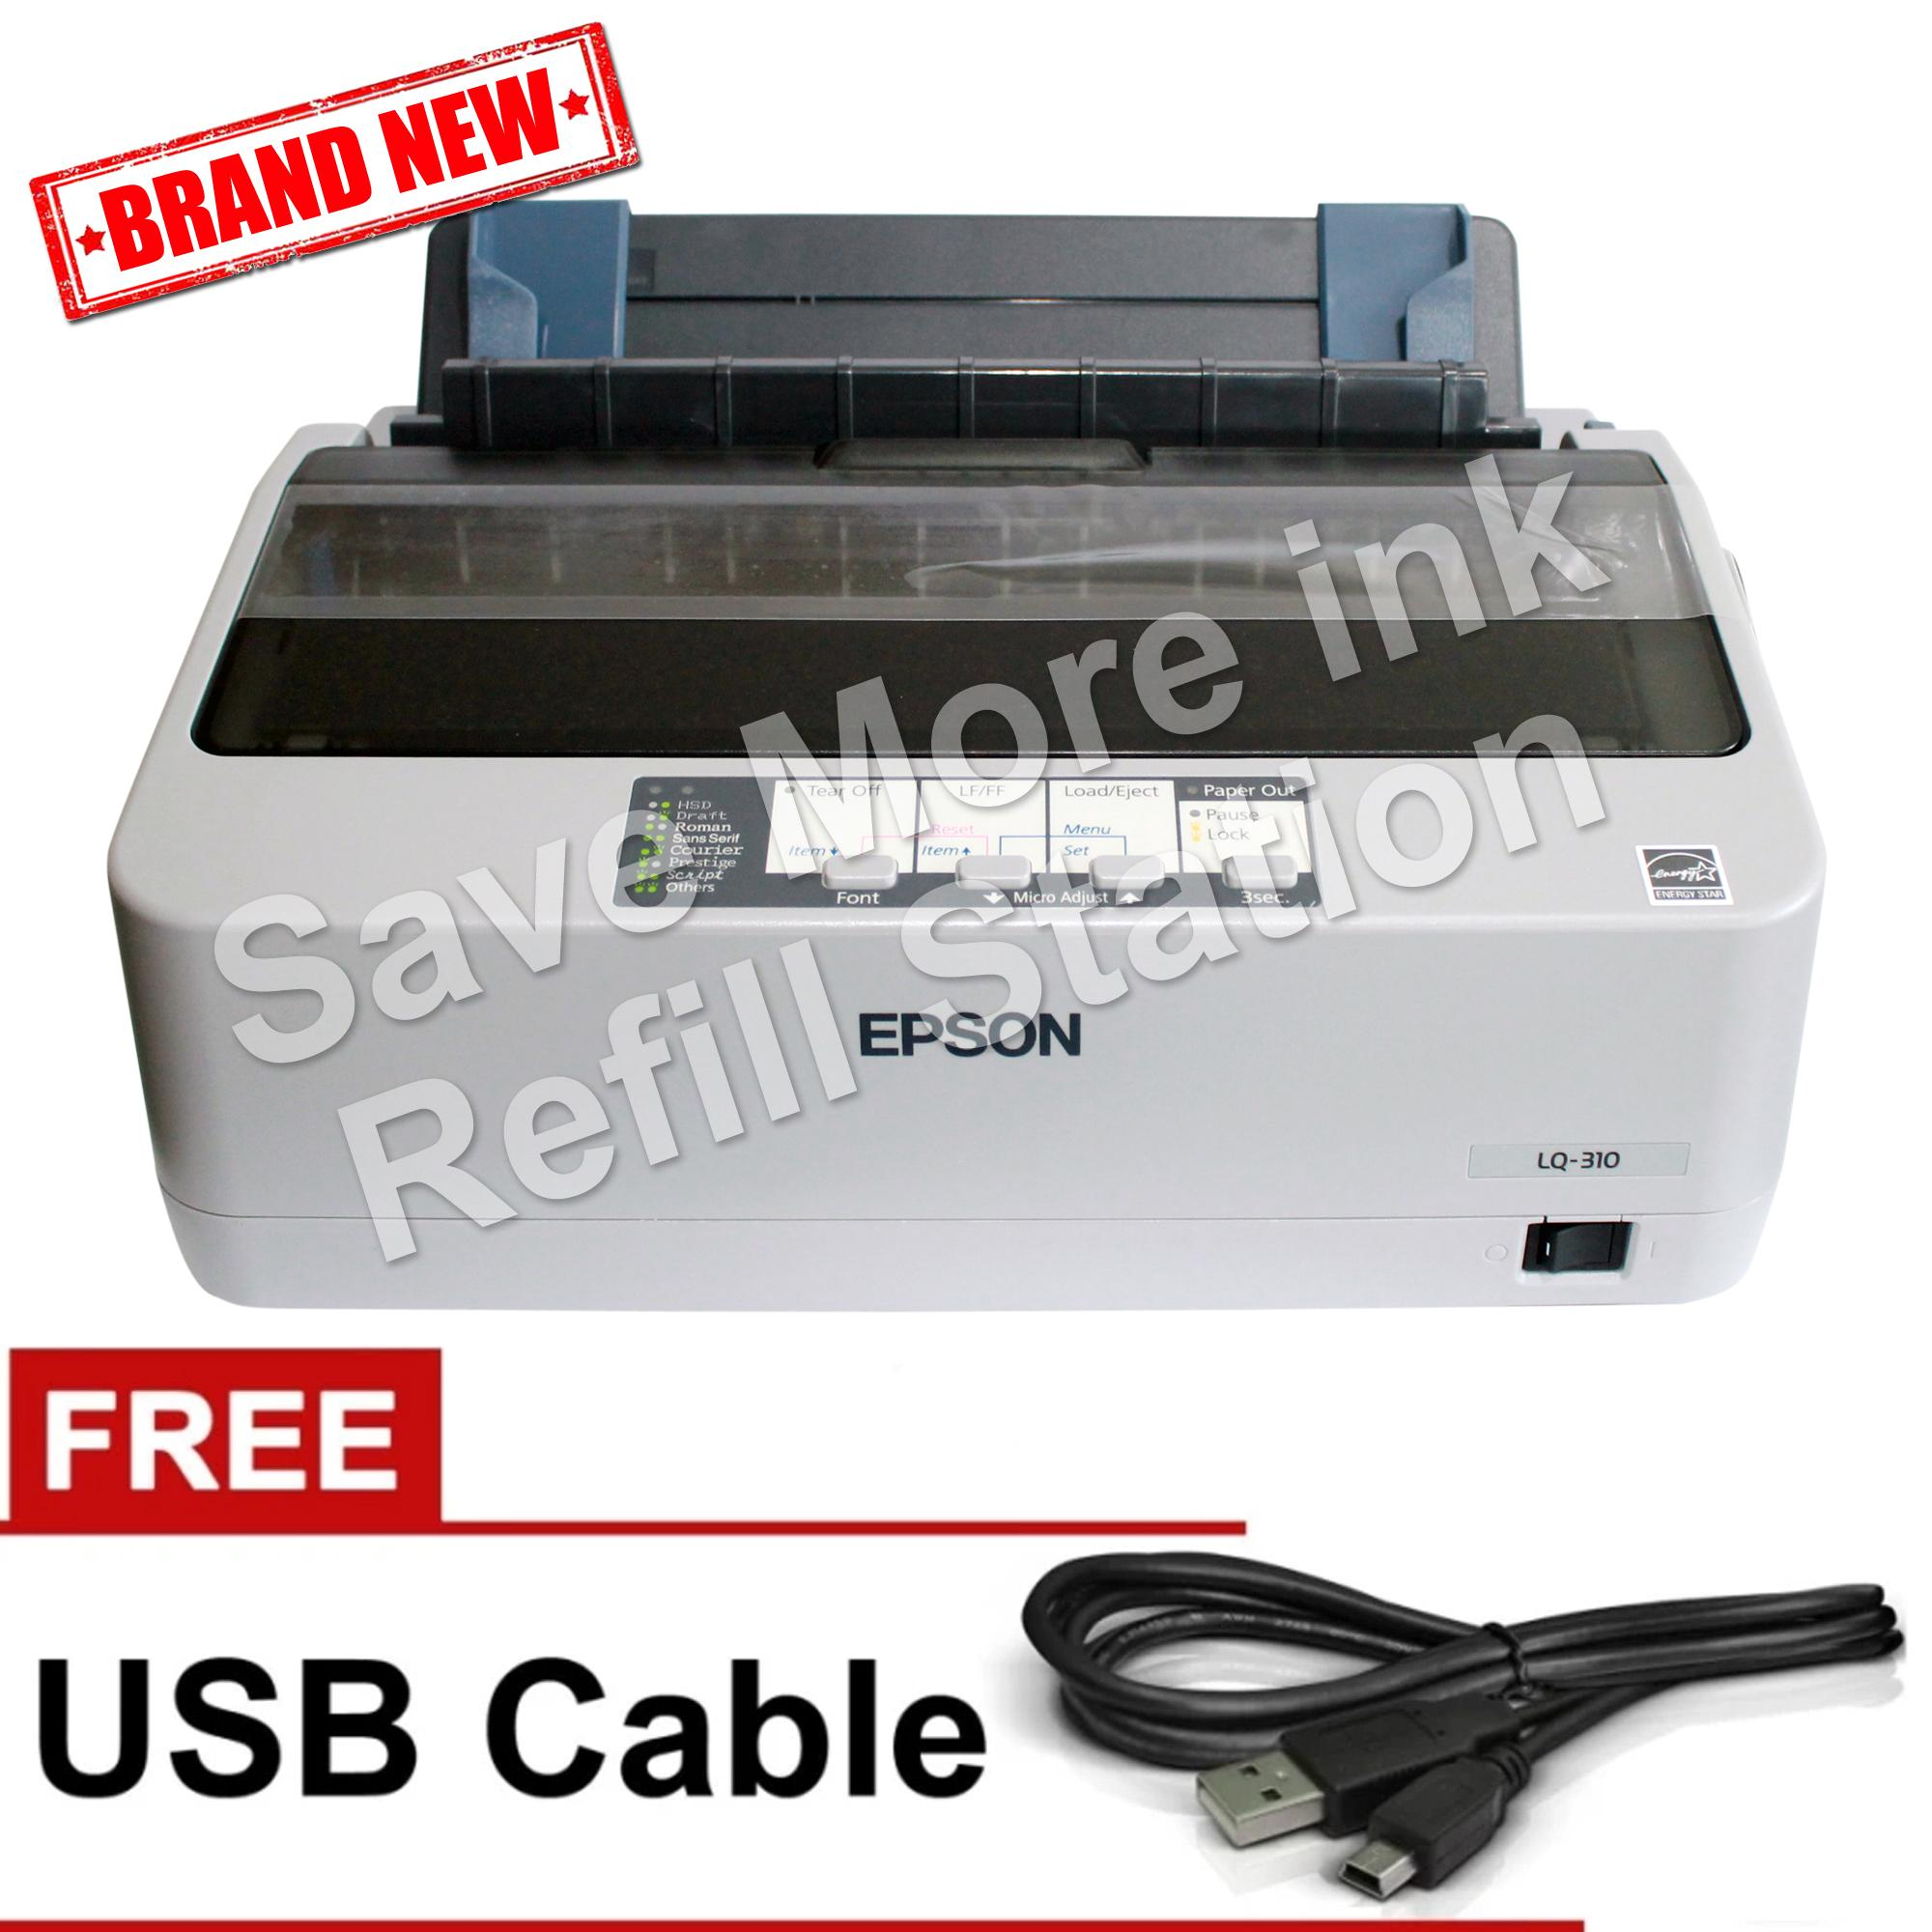 Kabel Head Epson Lx310 Original New Philippines Dot Matrix Printer For Sale Prices Lq 310